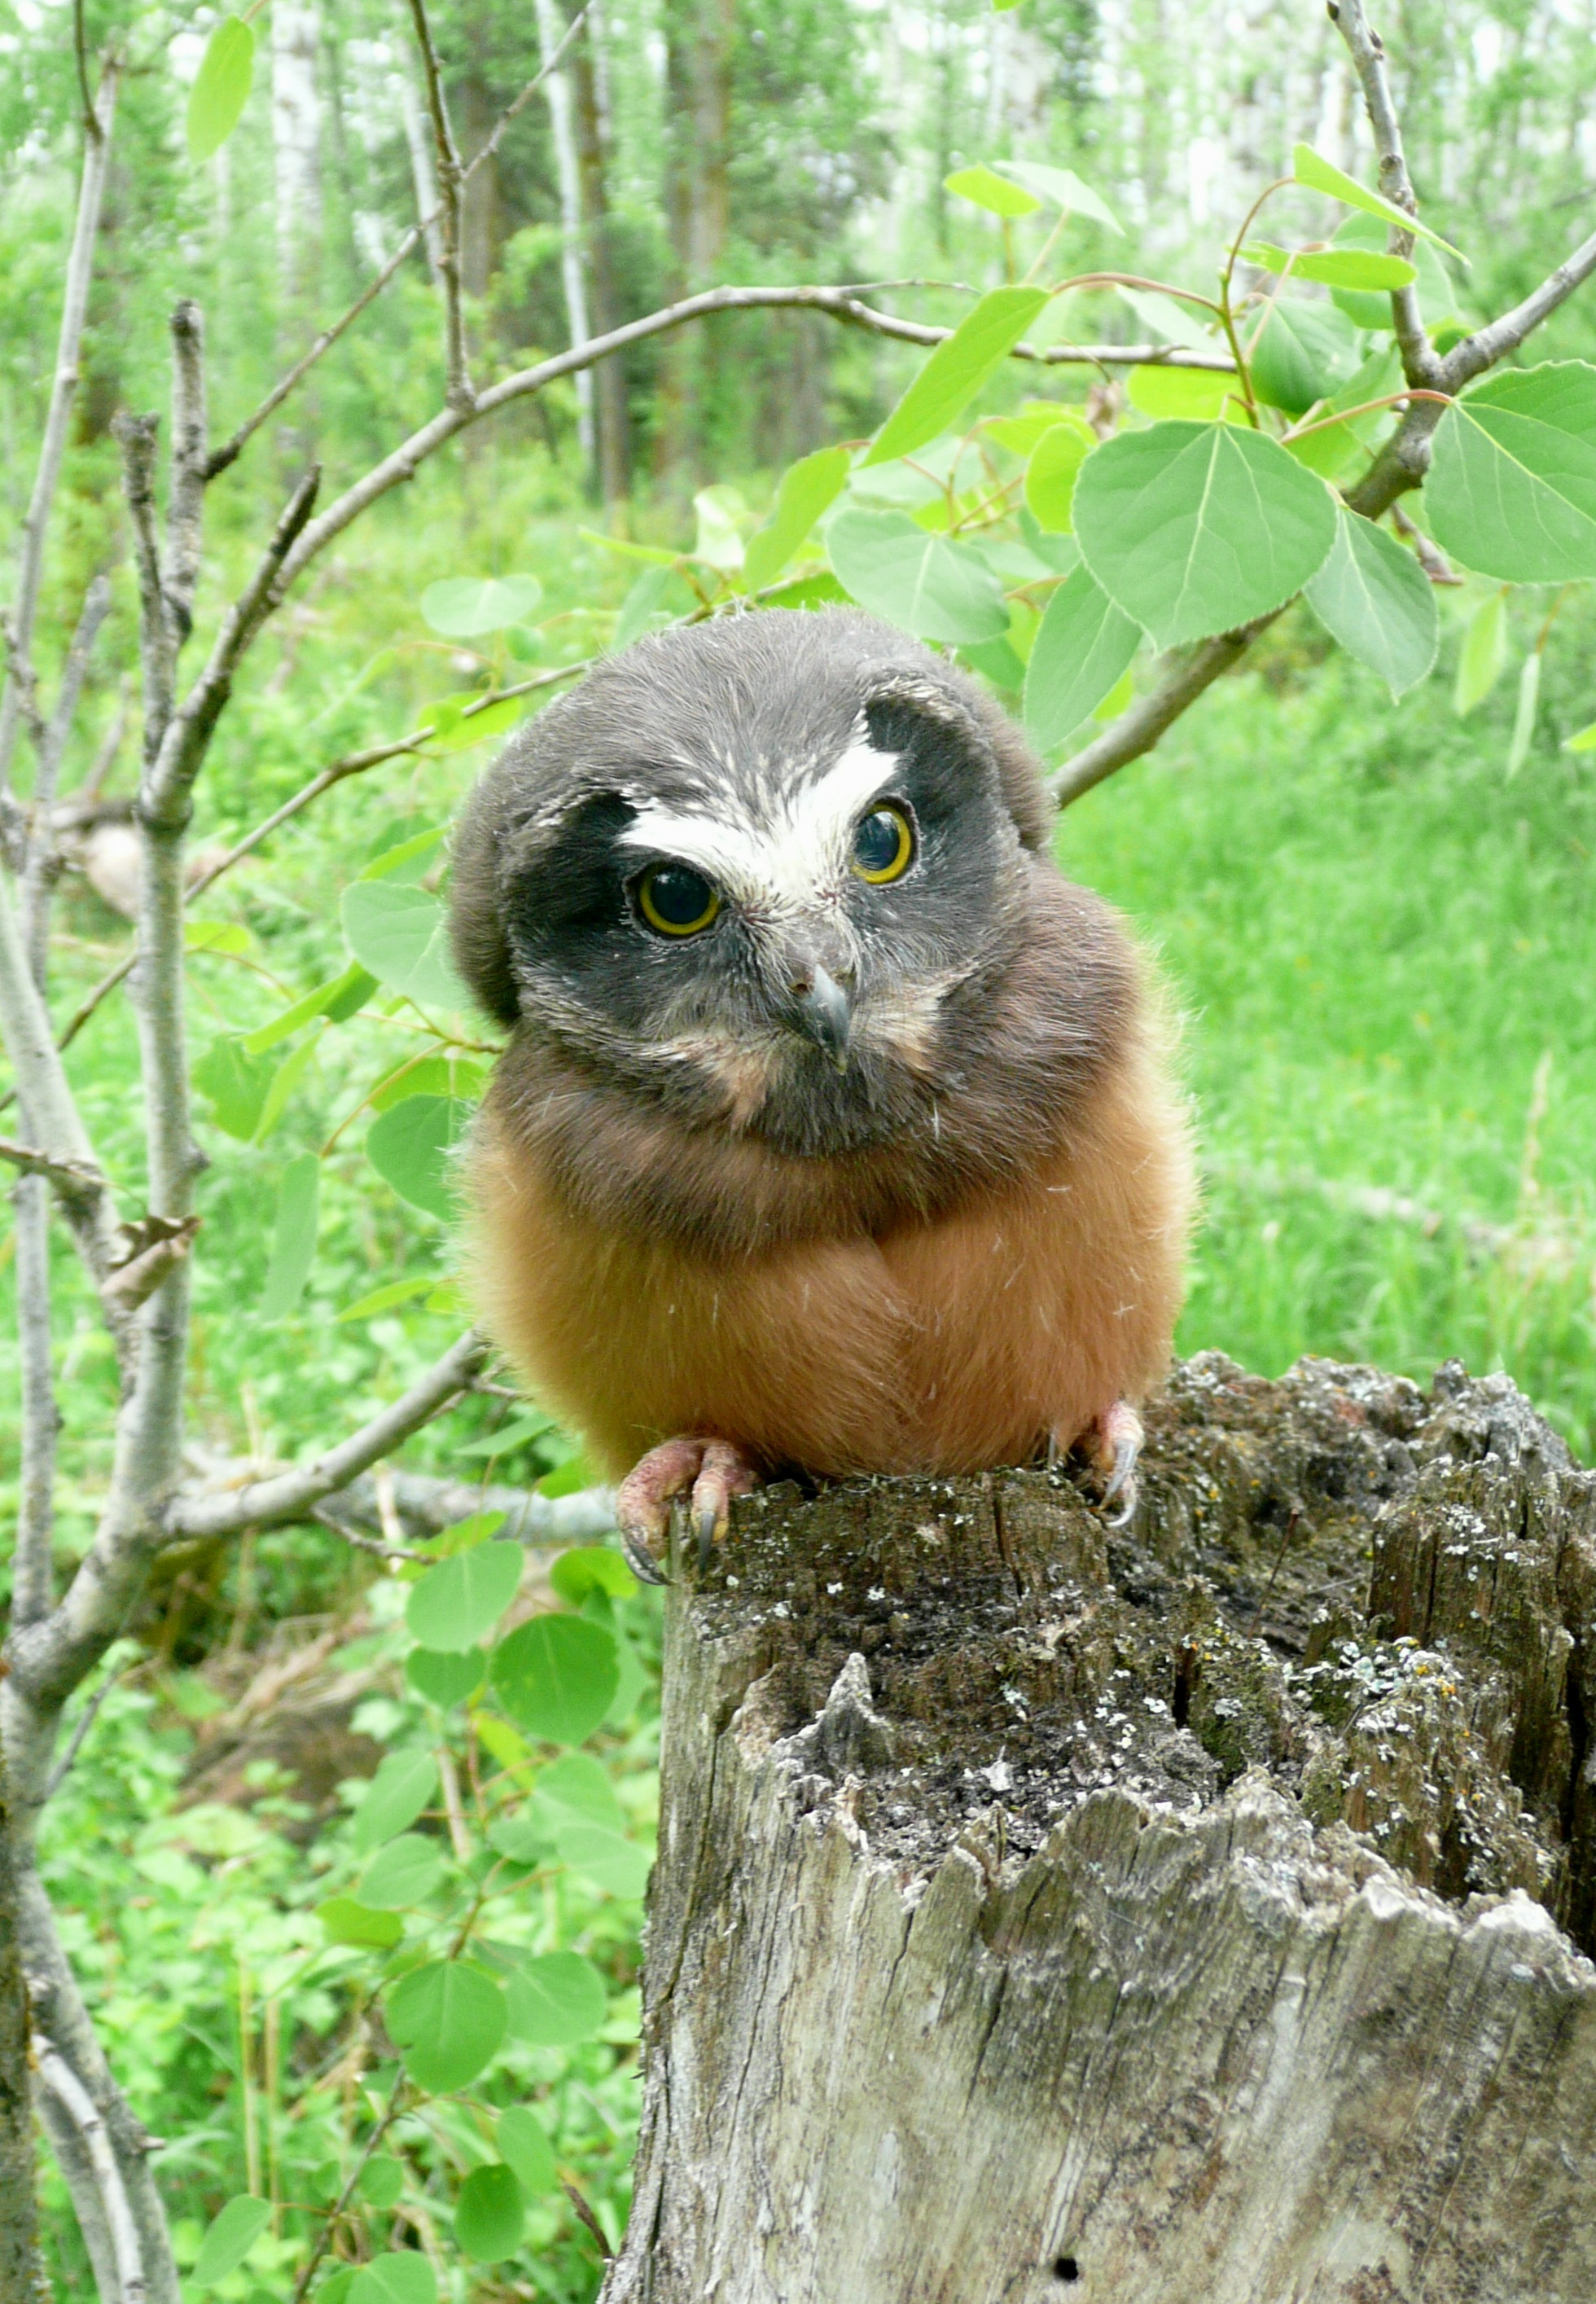 Young saw-whet owl